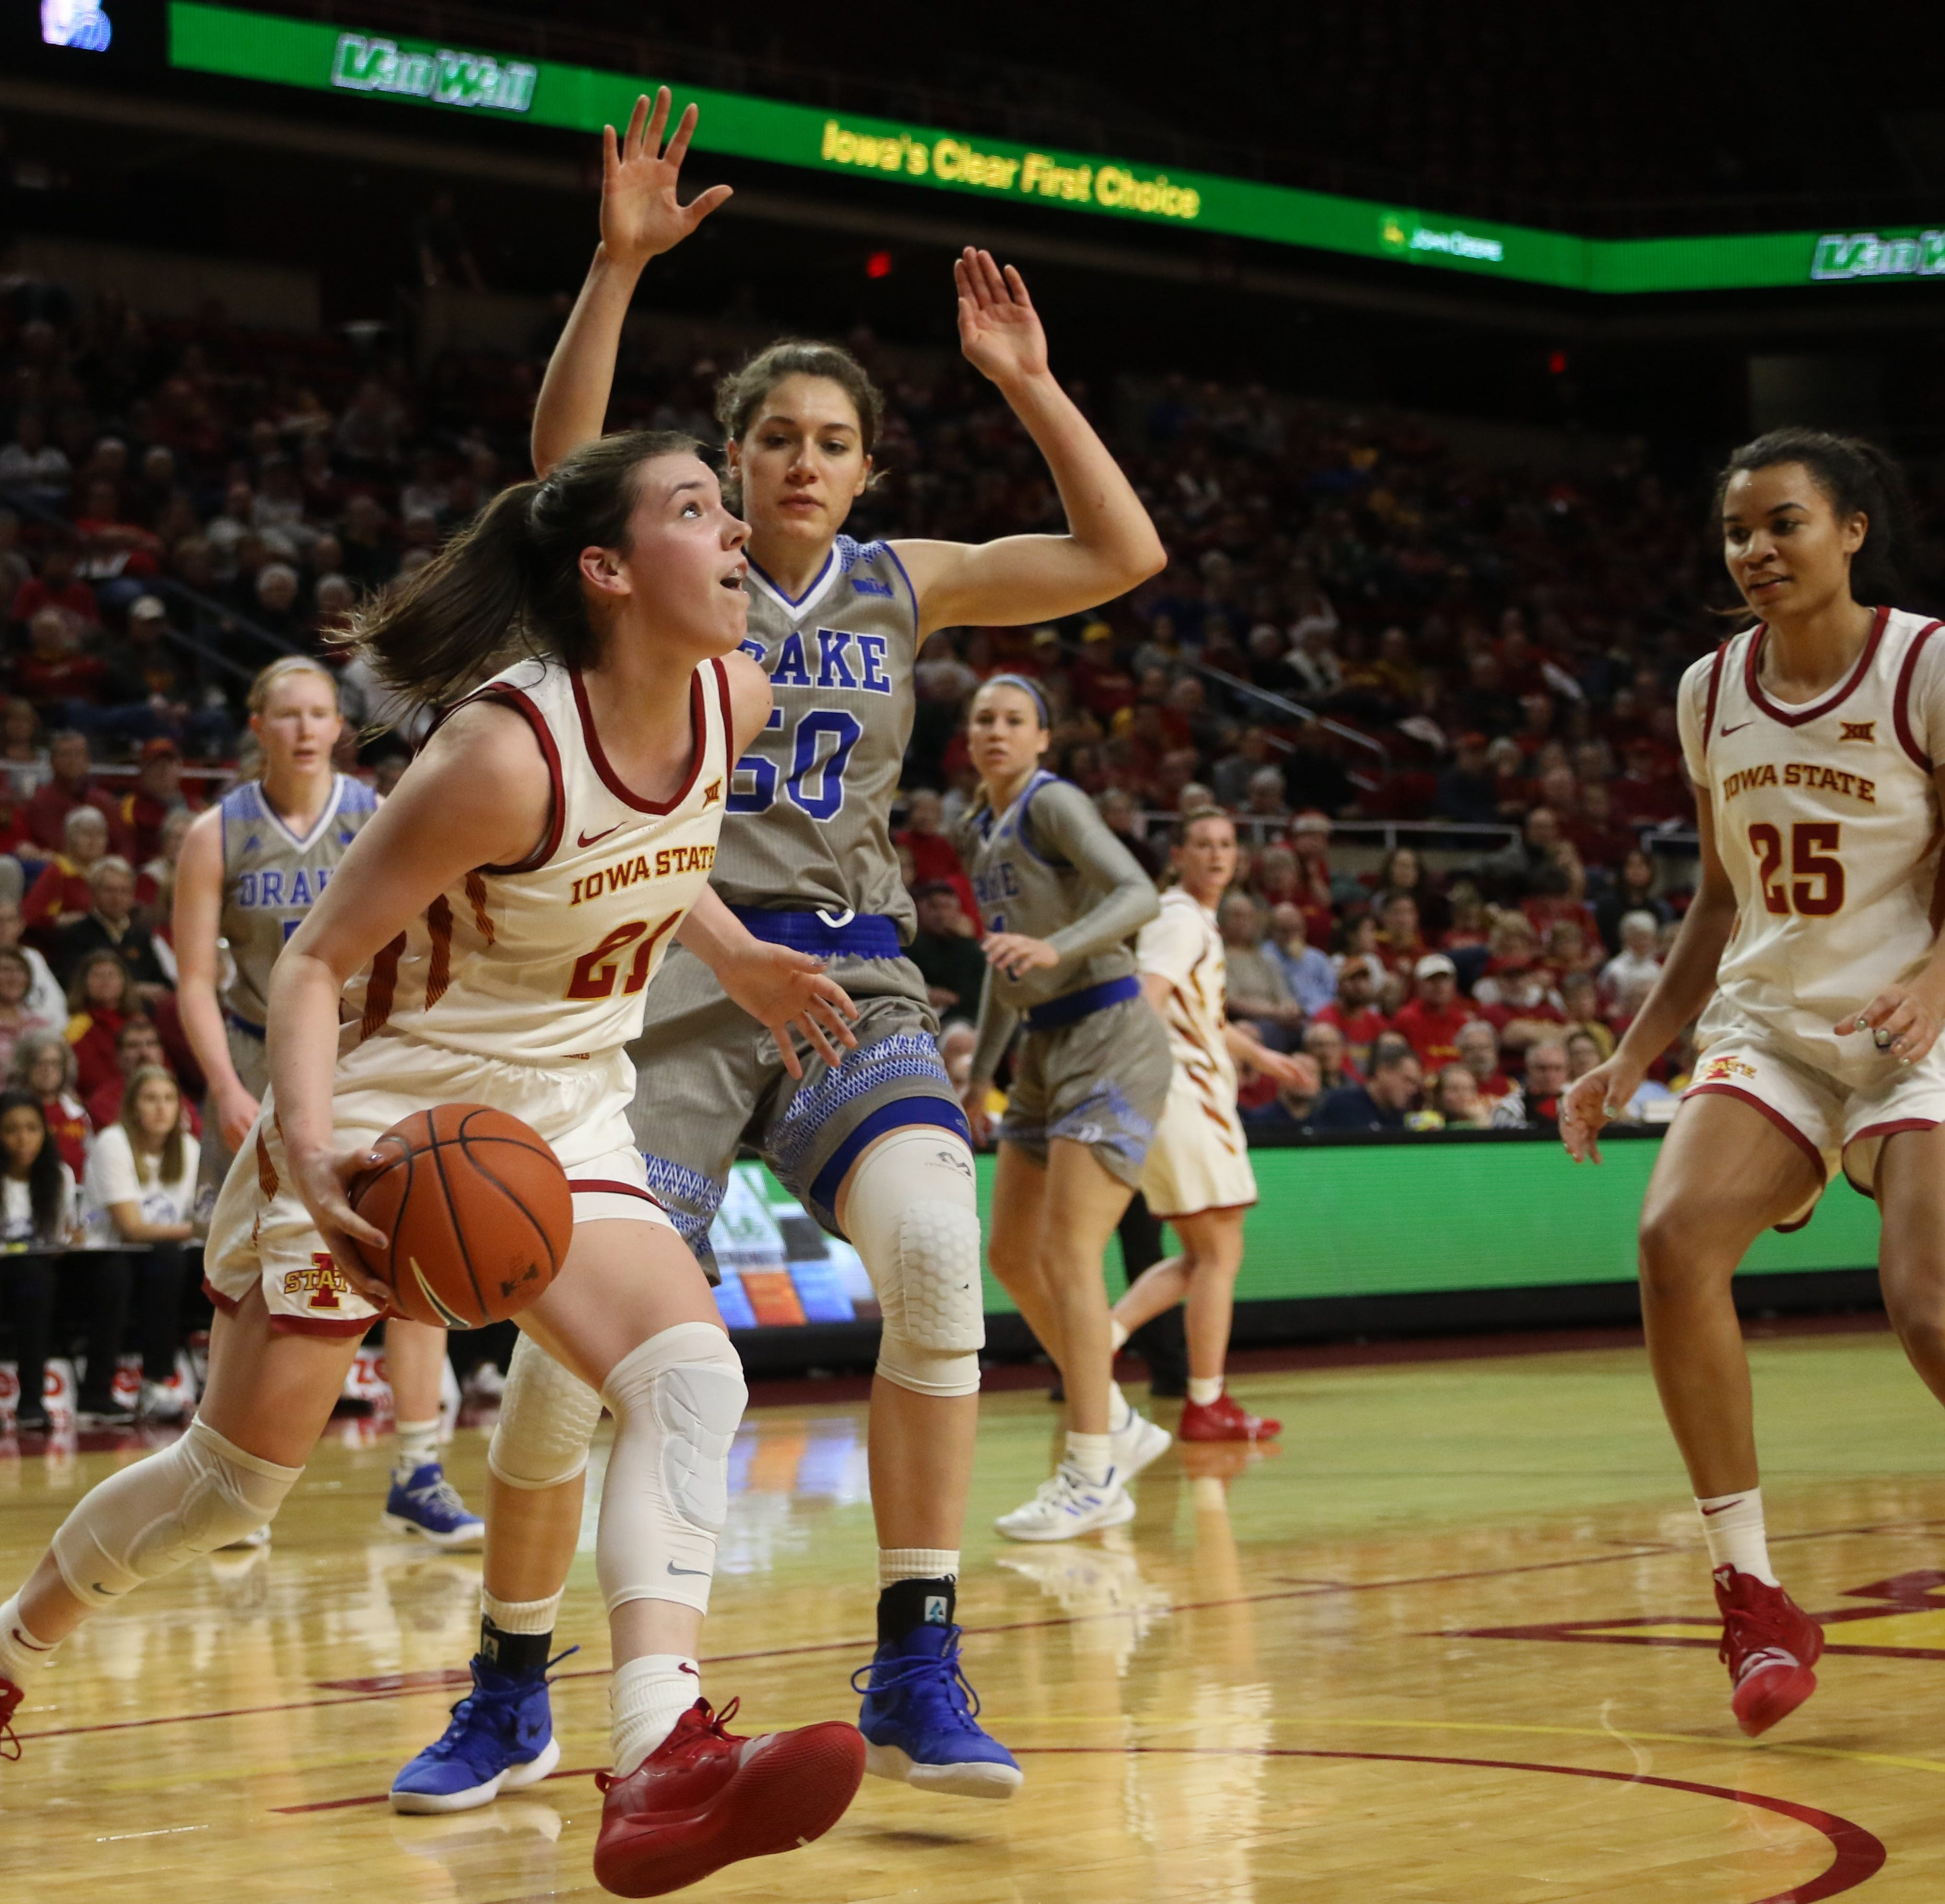 Iowa State women topple No. 25 Drake